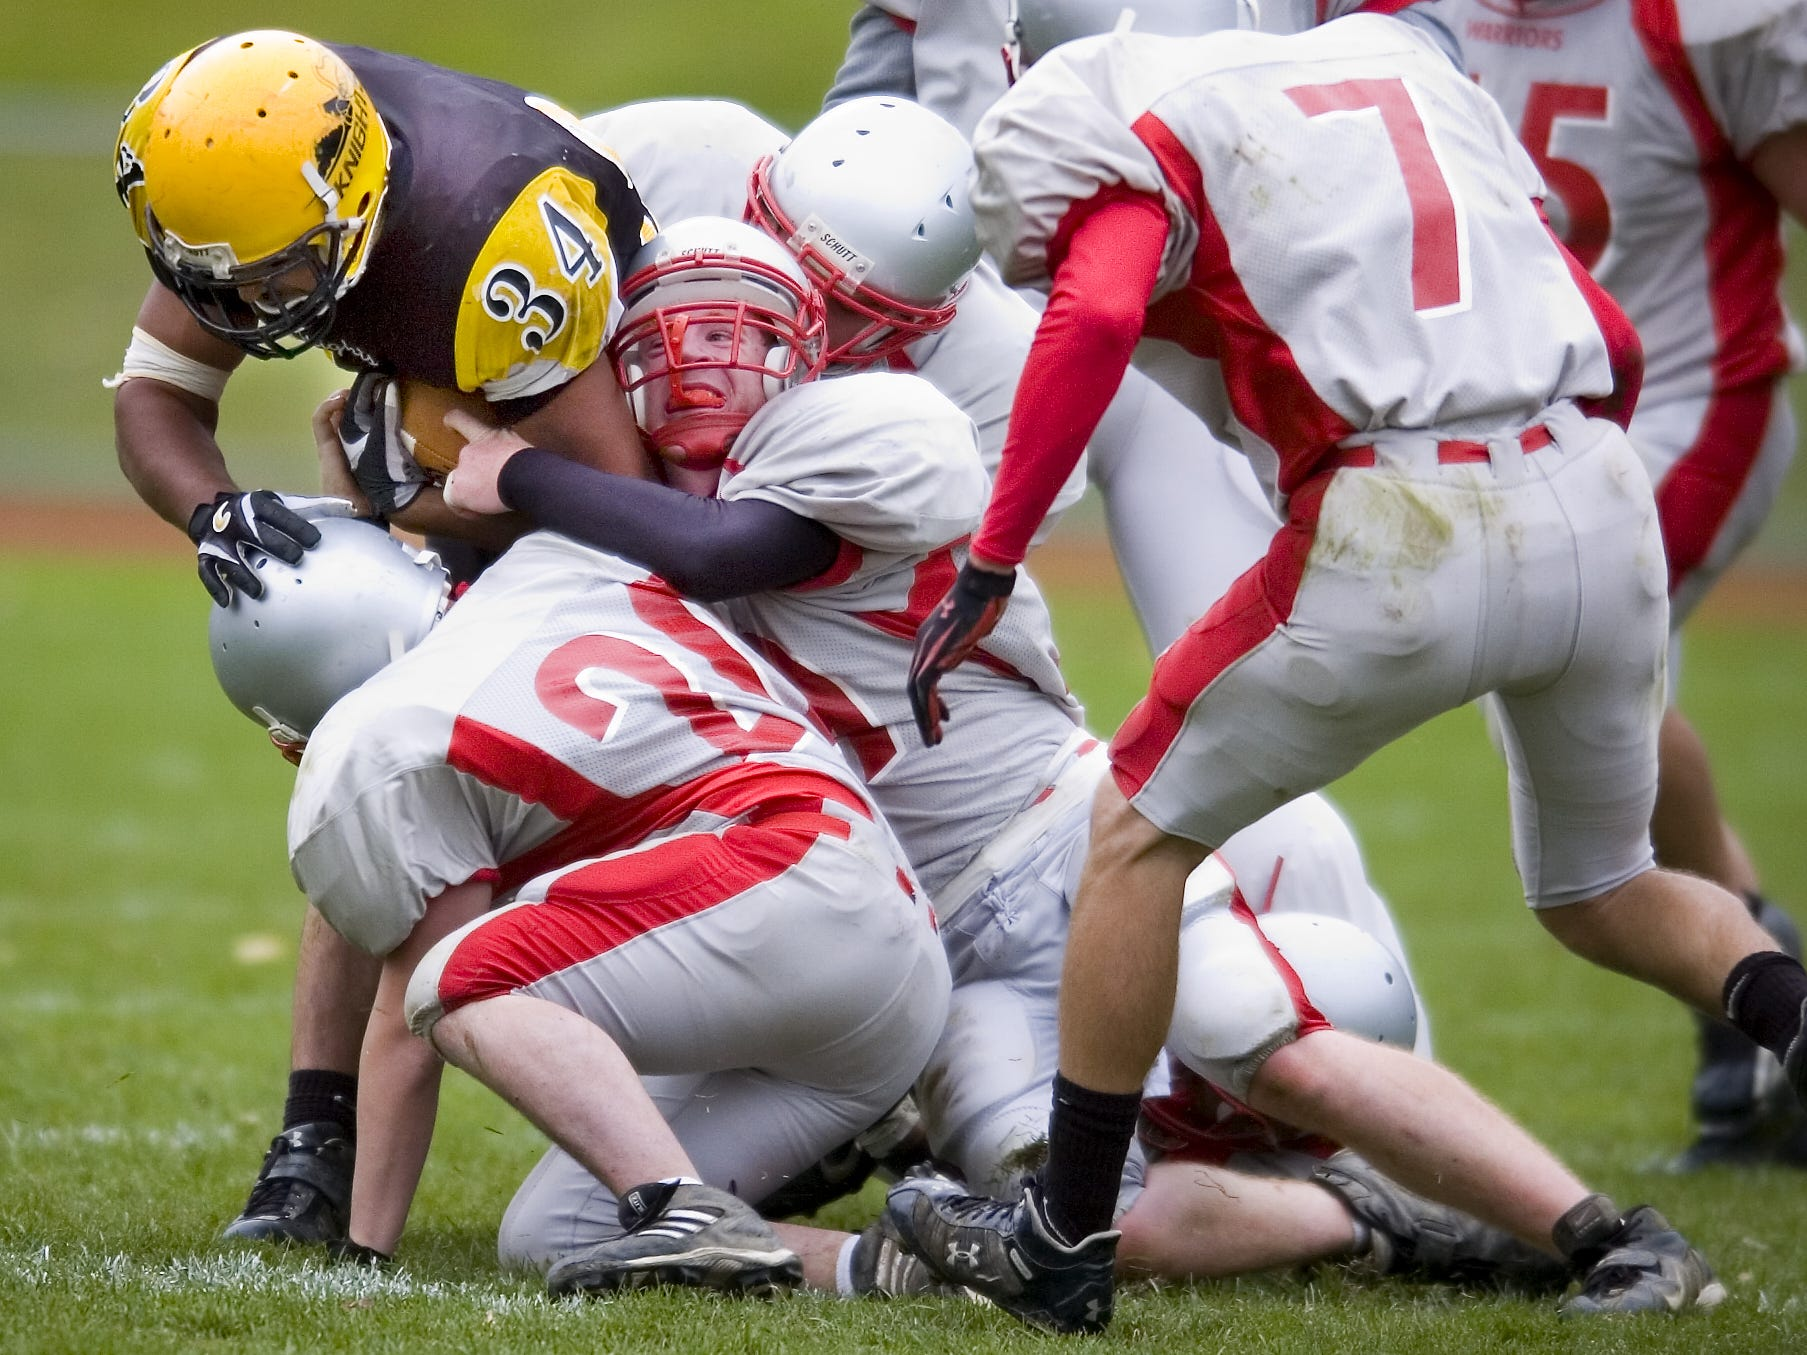 From 2006: Windsor's Bryant Parker is pulled down by a trio of Chenango Valley players during the game  Saturday. Windsor won 15-14.